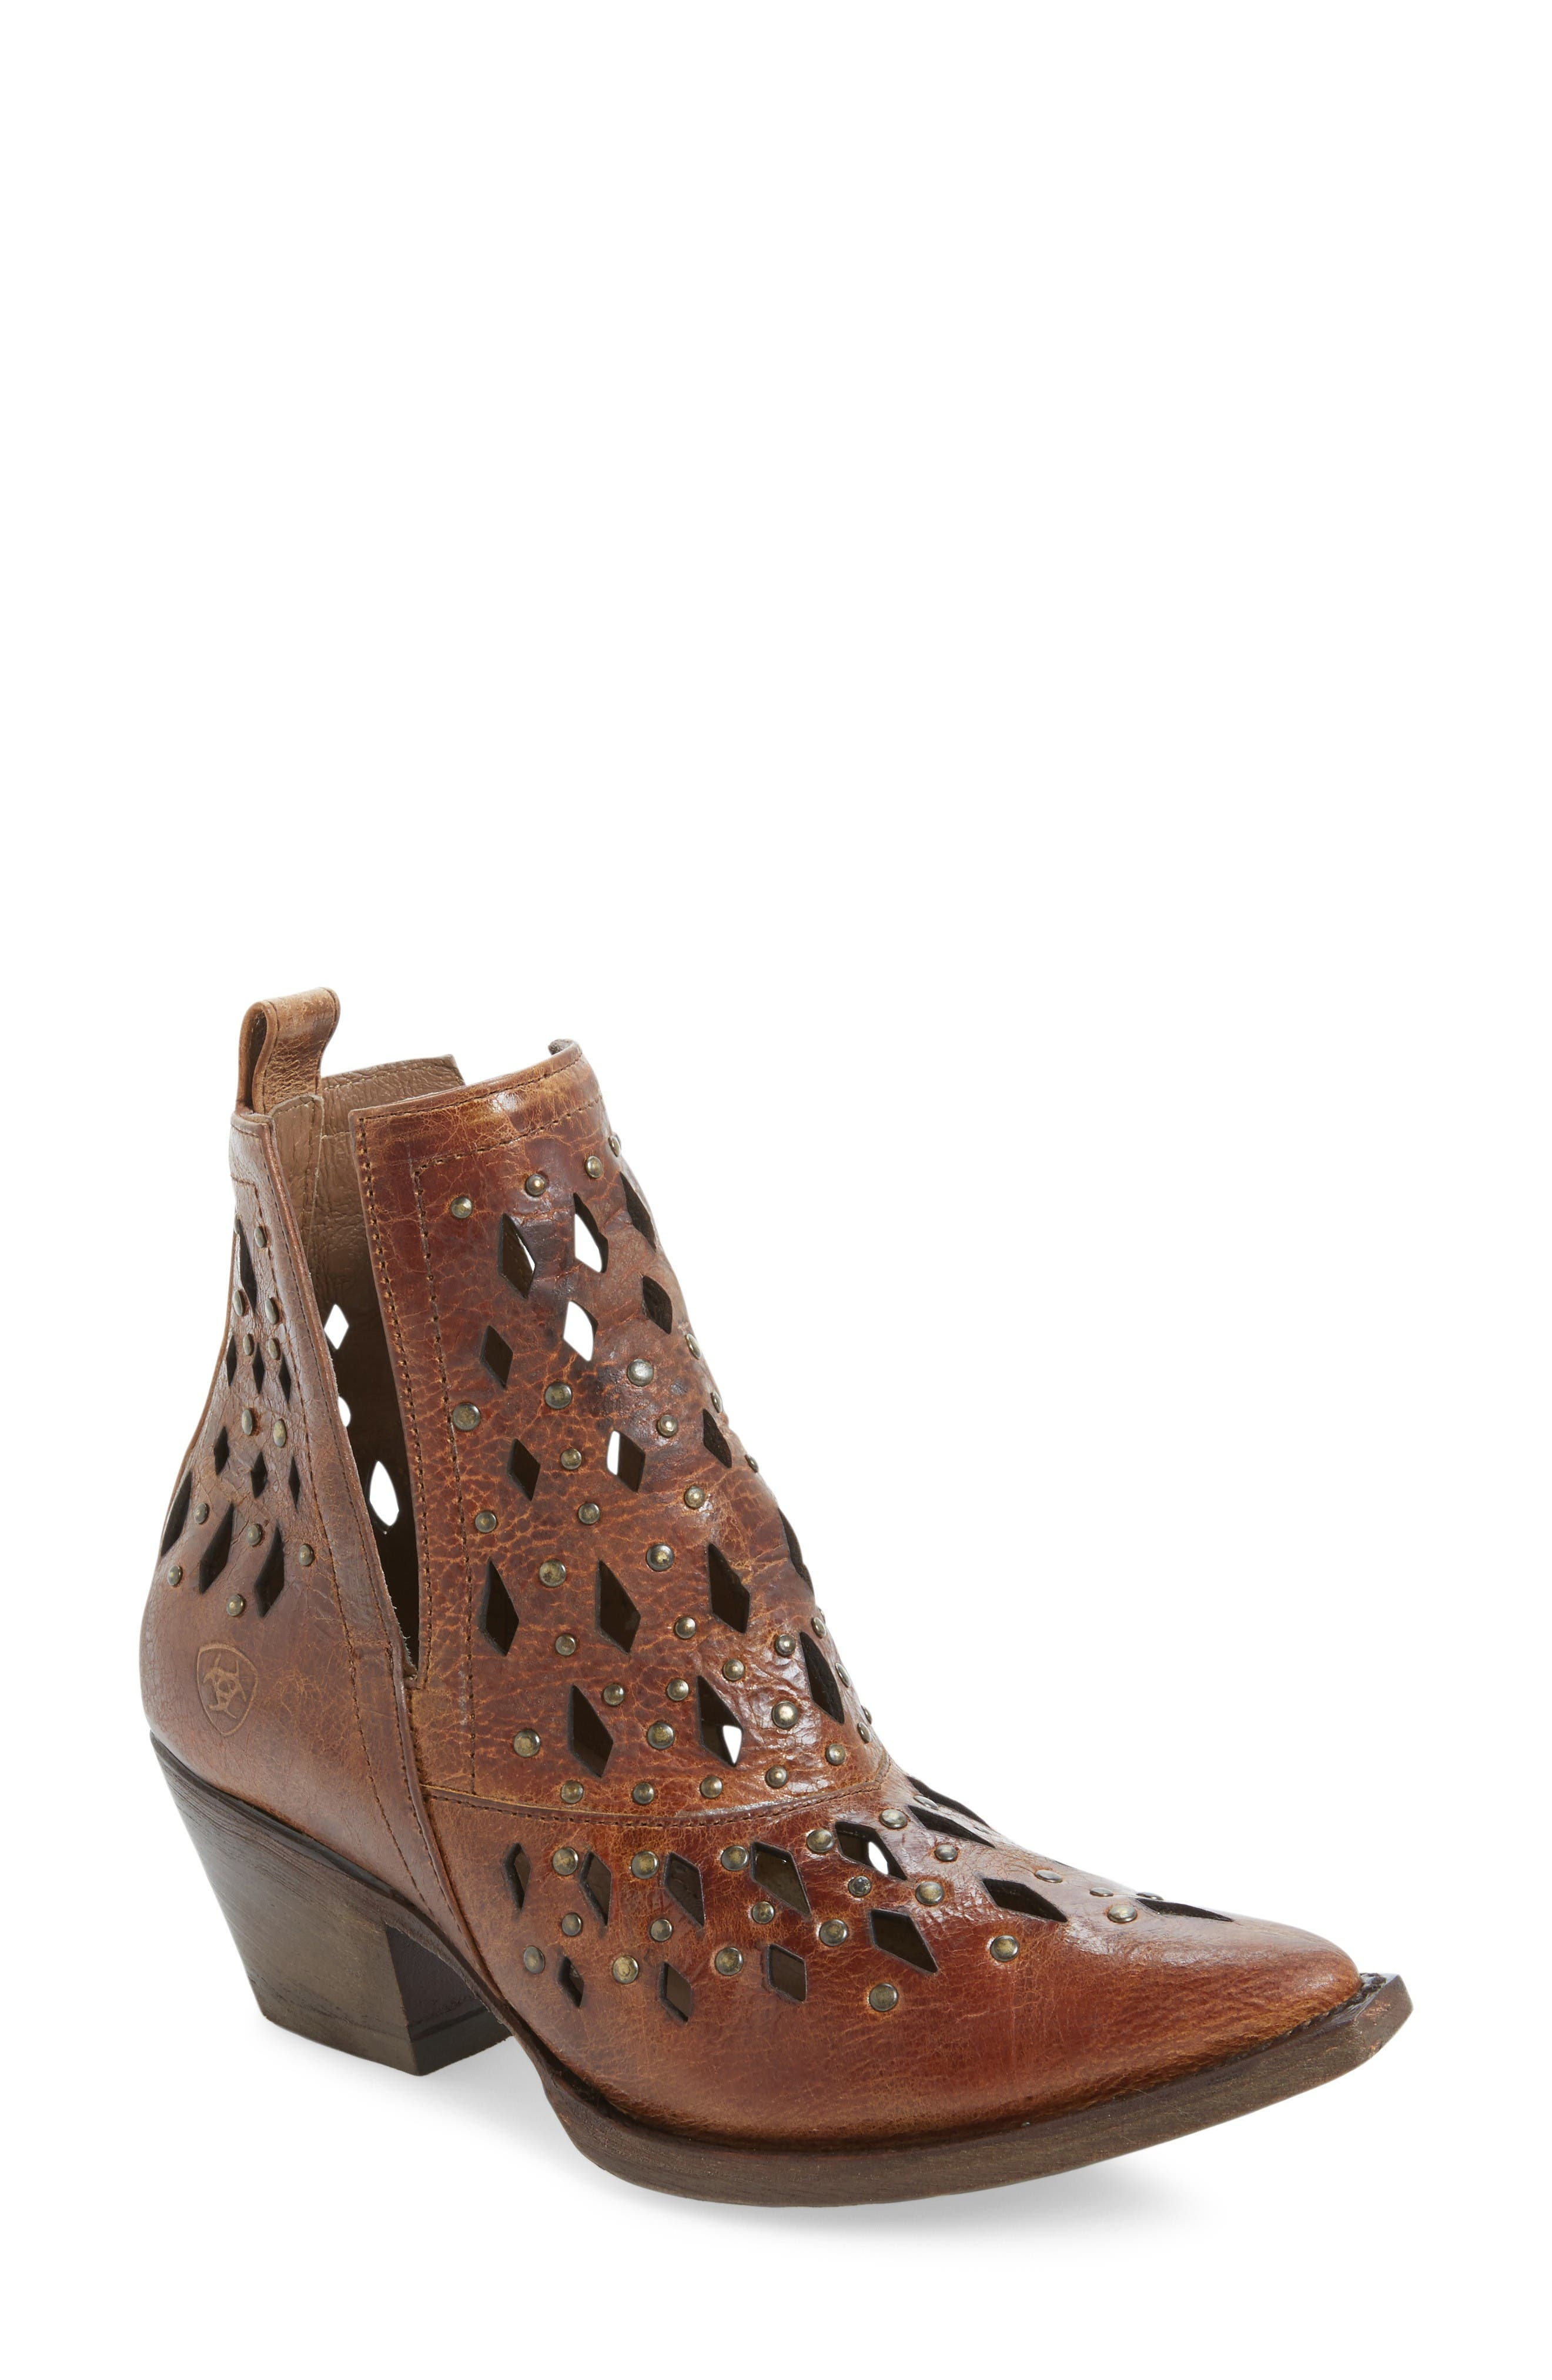 Alternate Image 1 Selected - Ariat Chiquita Studded Cutout Bootie (Women)